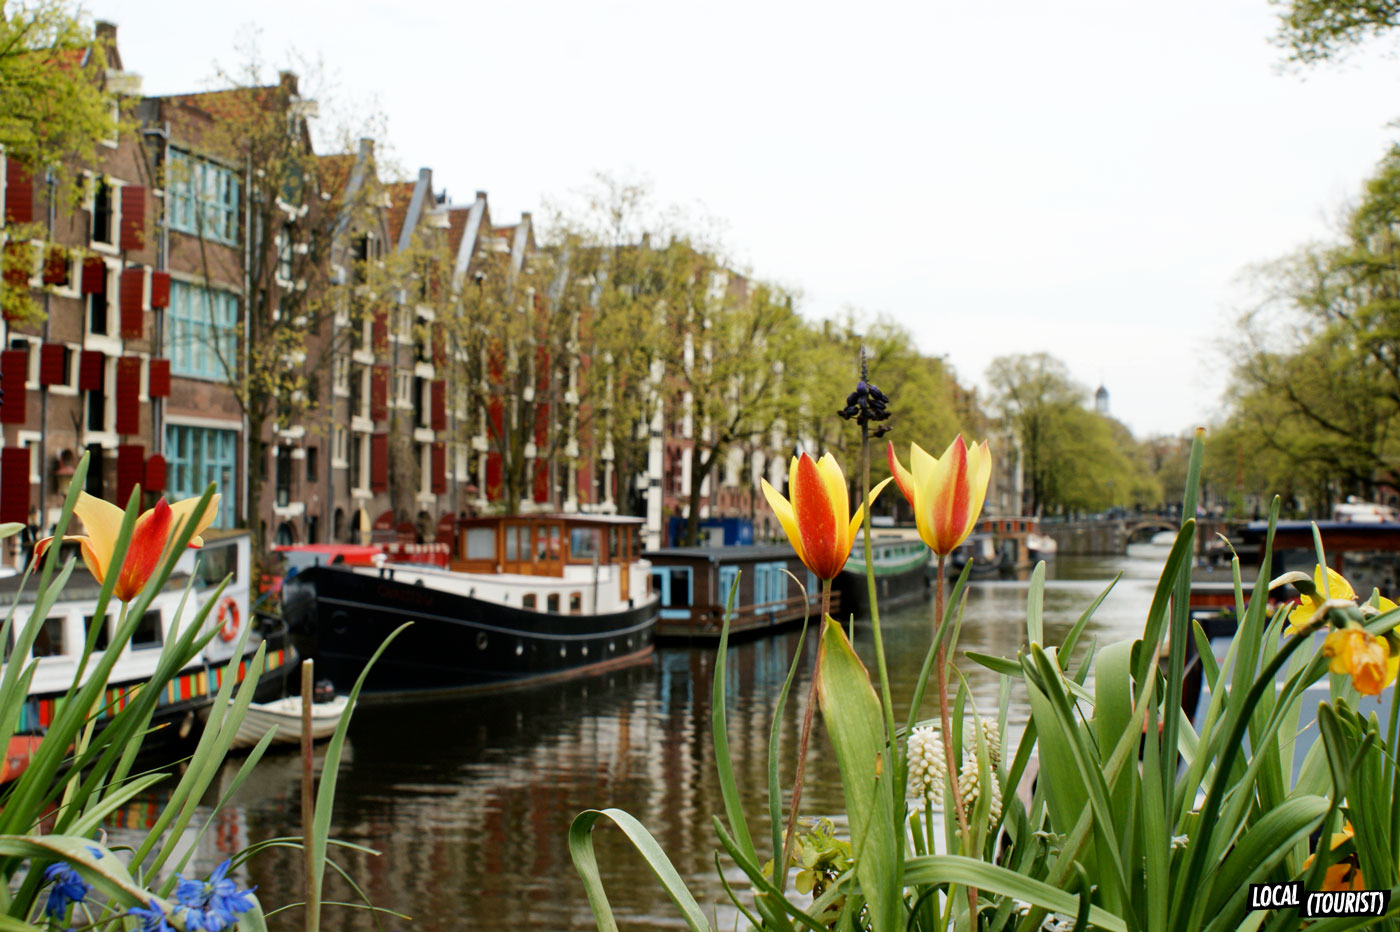 Canal-Tulips_Amsterdam_Local(Tourist).jpg